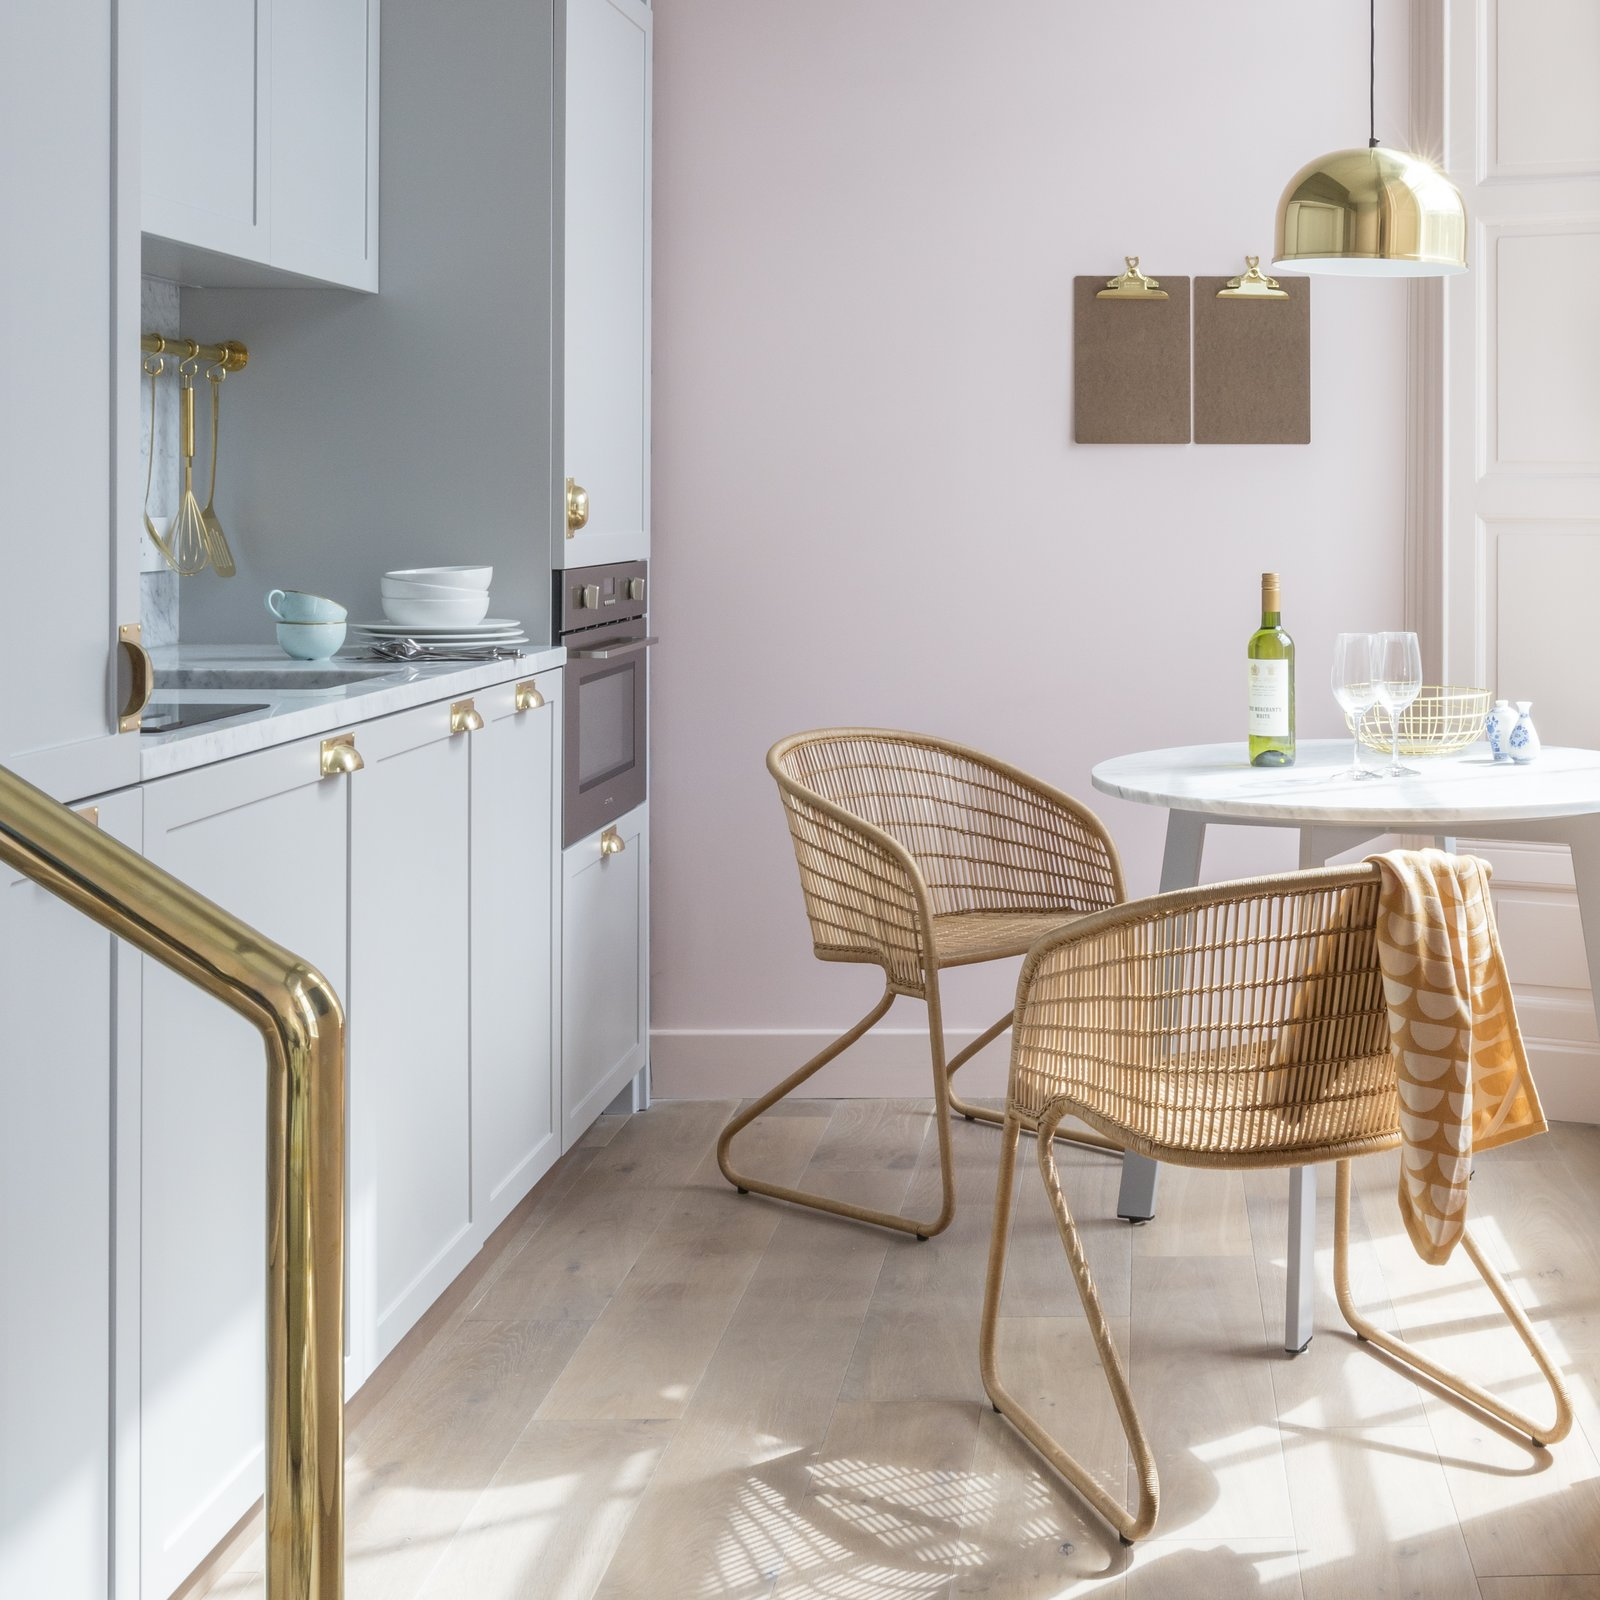 Kitchen, Marble Counter, Medium Hardwood Floor, Colorful Cabinet, and Pendant Lighting  Photo 7 of 12 in Part Apartment, Part Boutique Hotel, Eden Locke Brings a New Brand of Comfort to Edinburgh